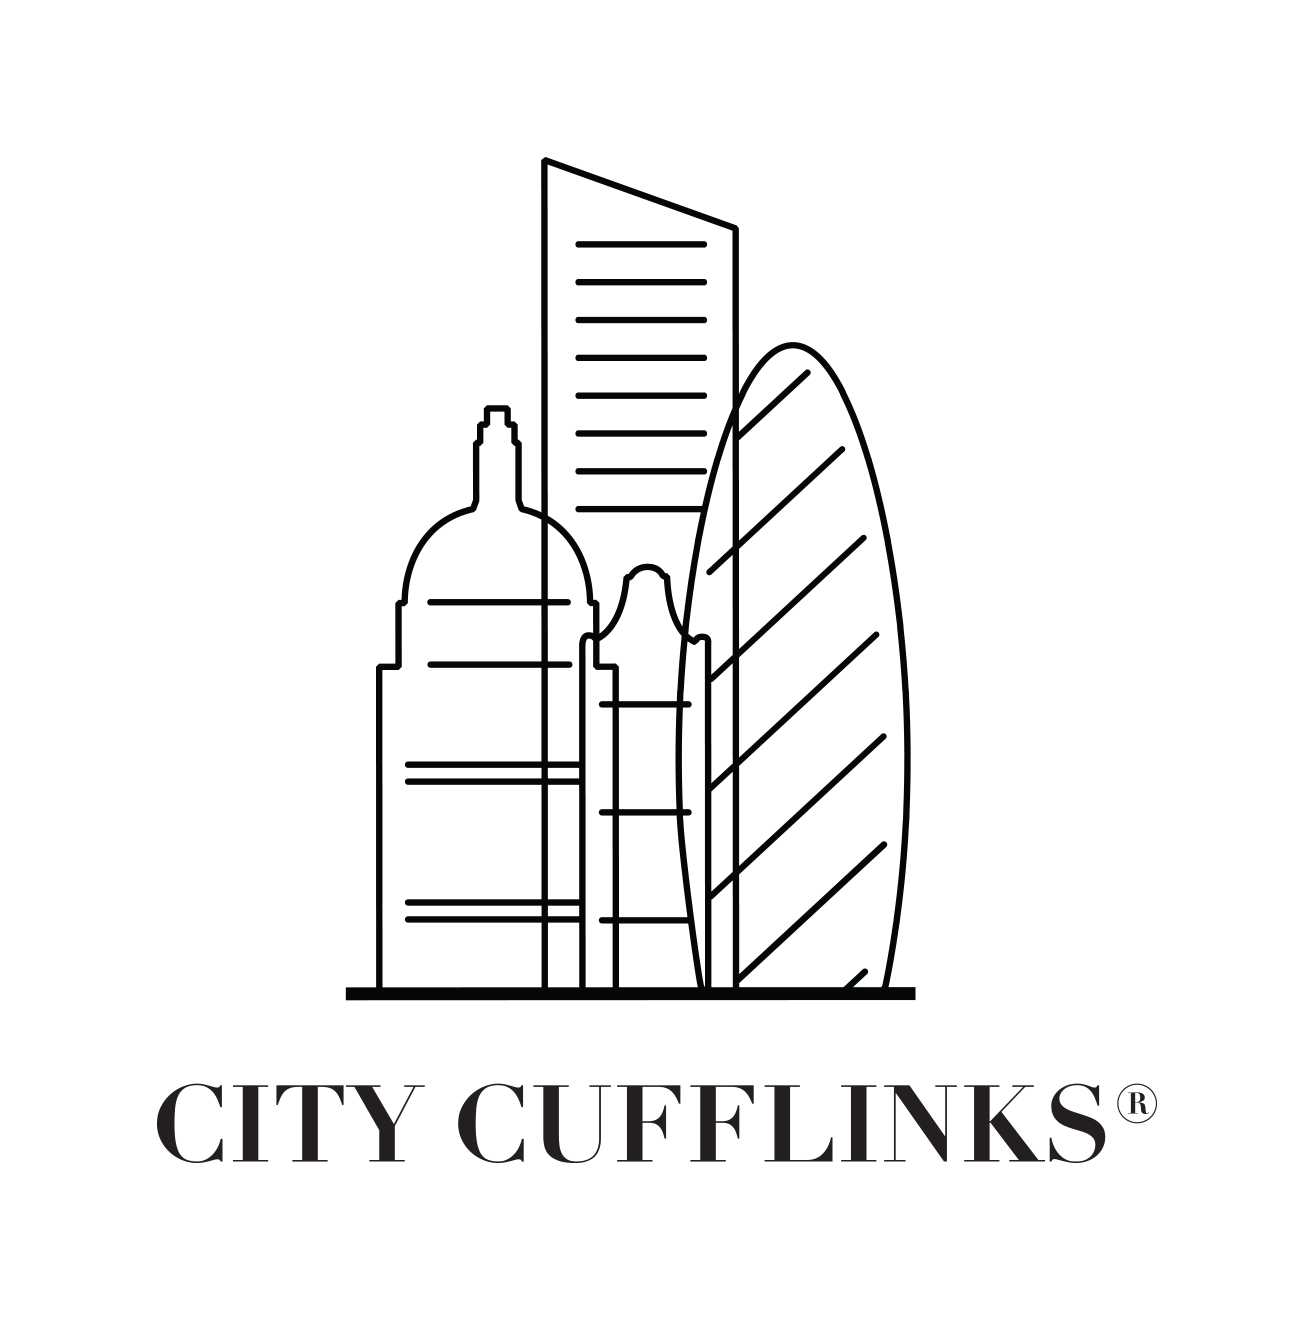 City Cufflinks International BV